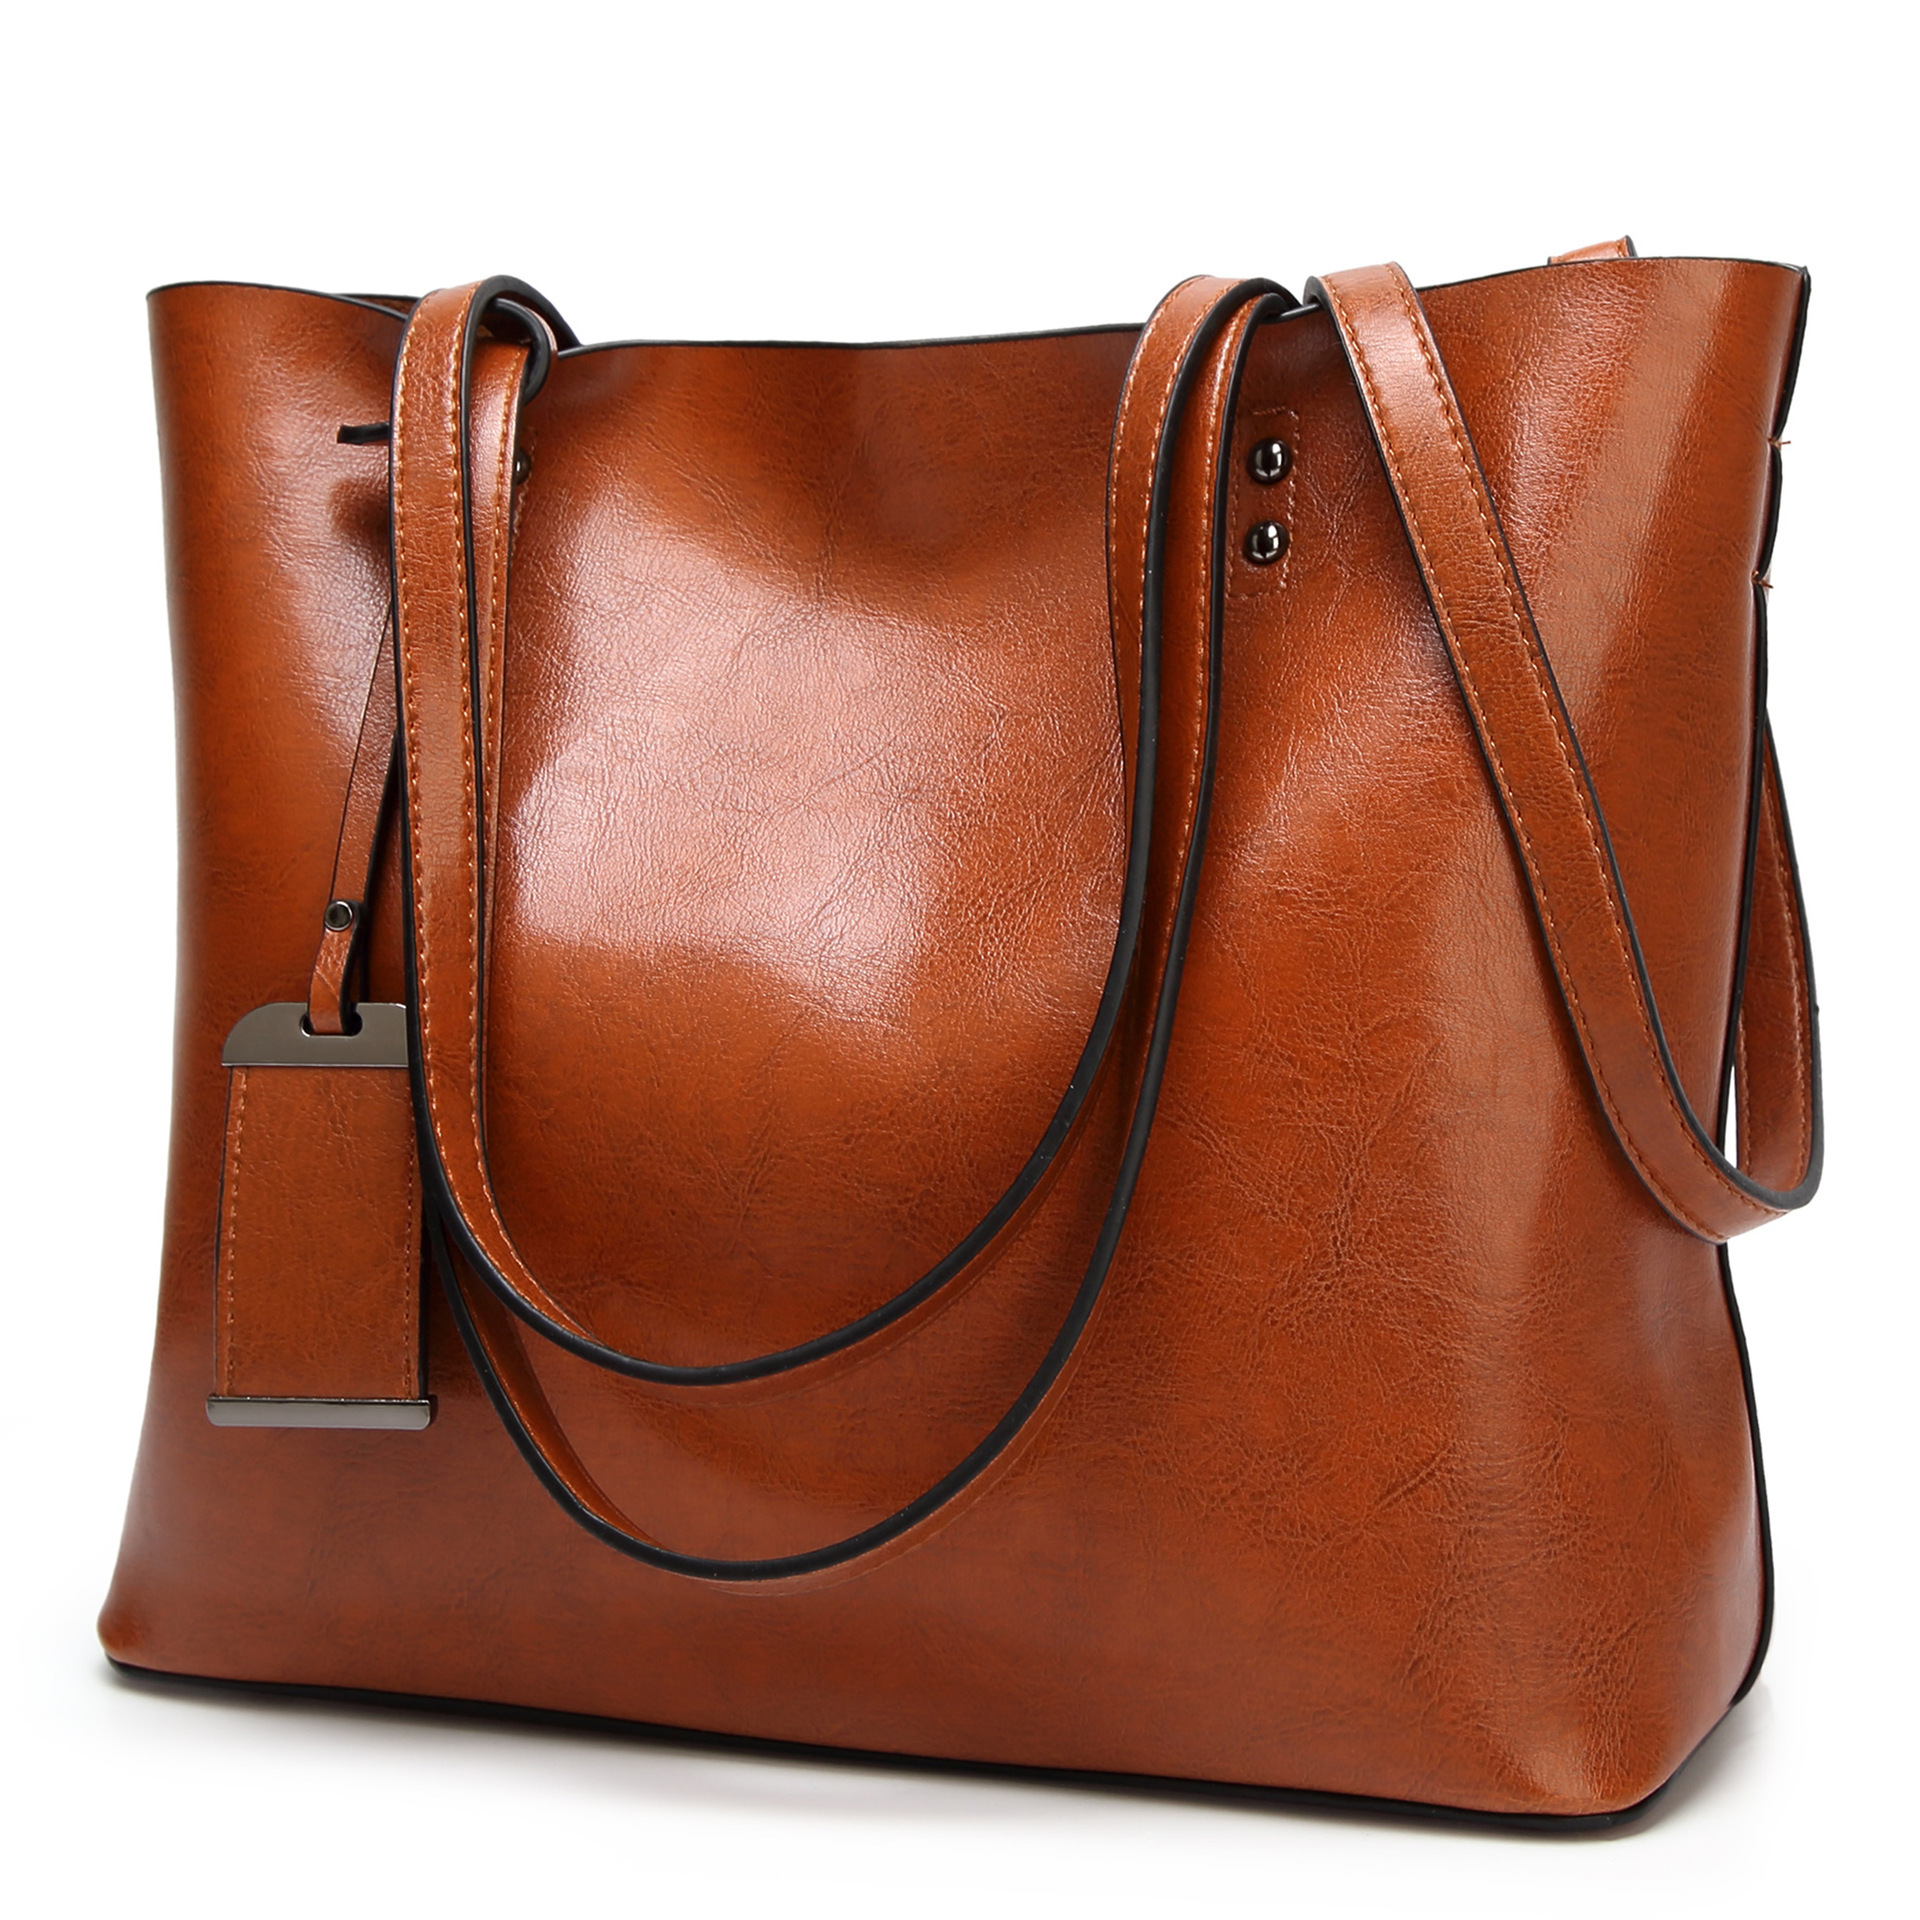 Europe And The United States 2019 New Women S Bags Cross Border Leather Fashion Handbags Shoulder Messenger Bag